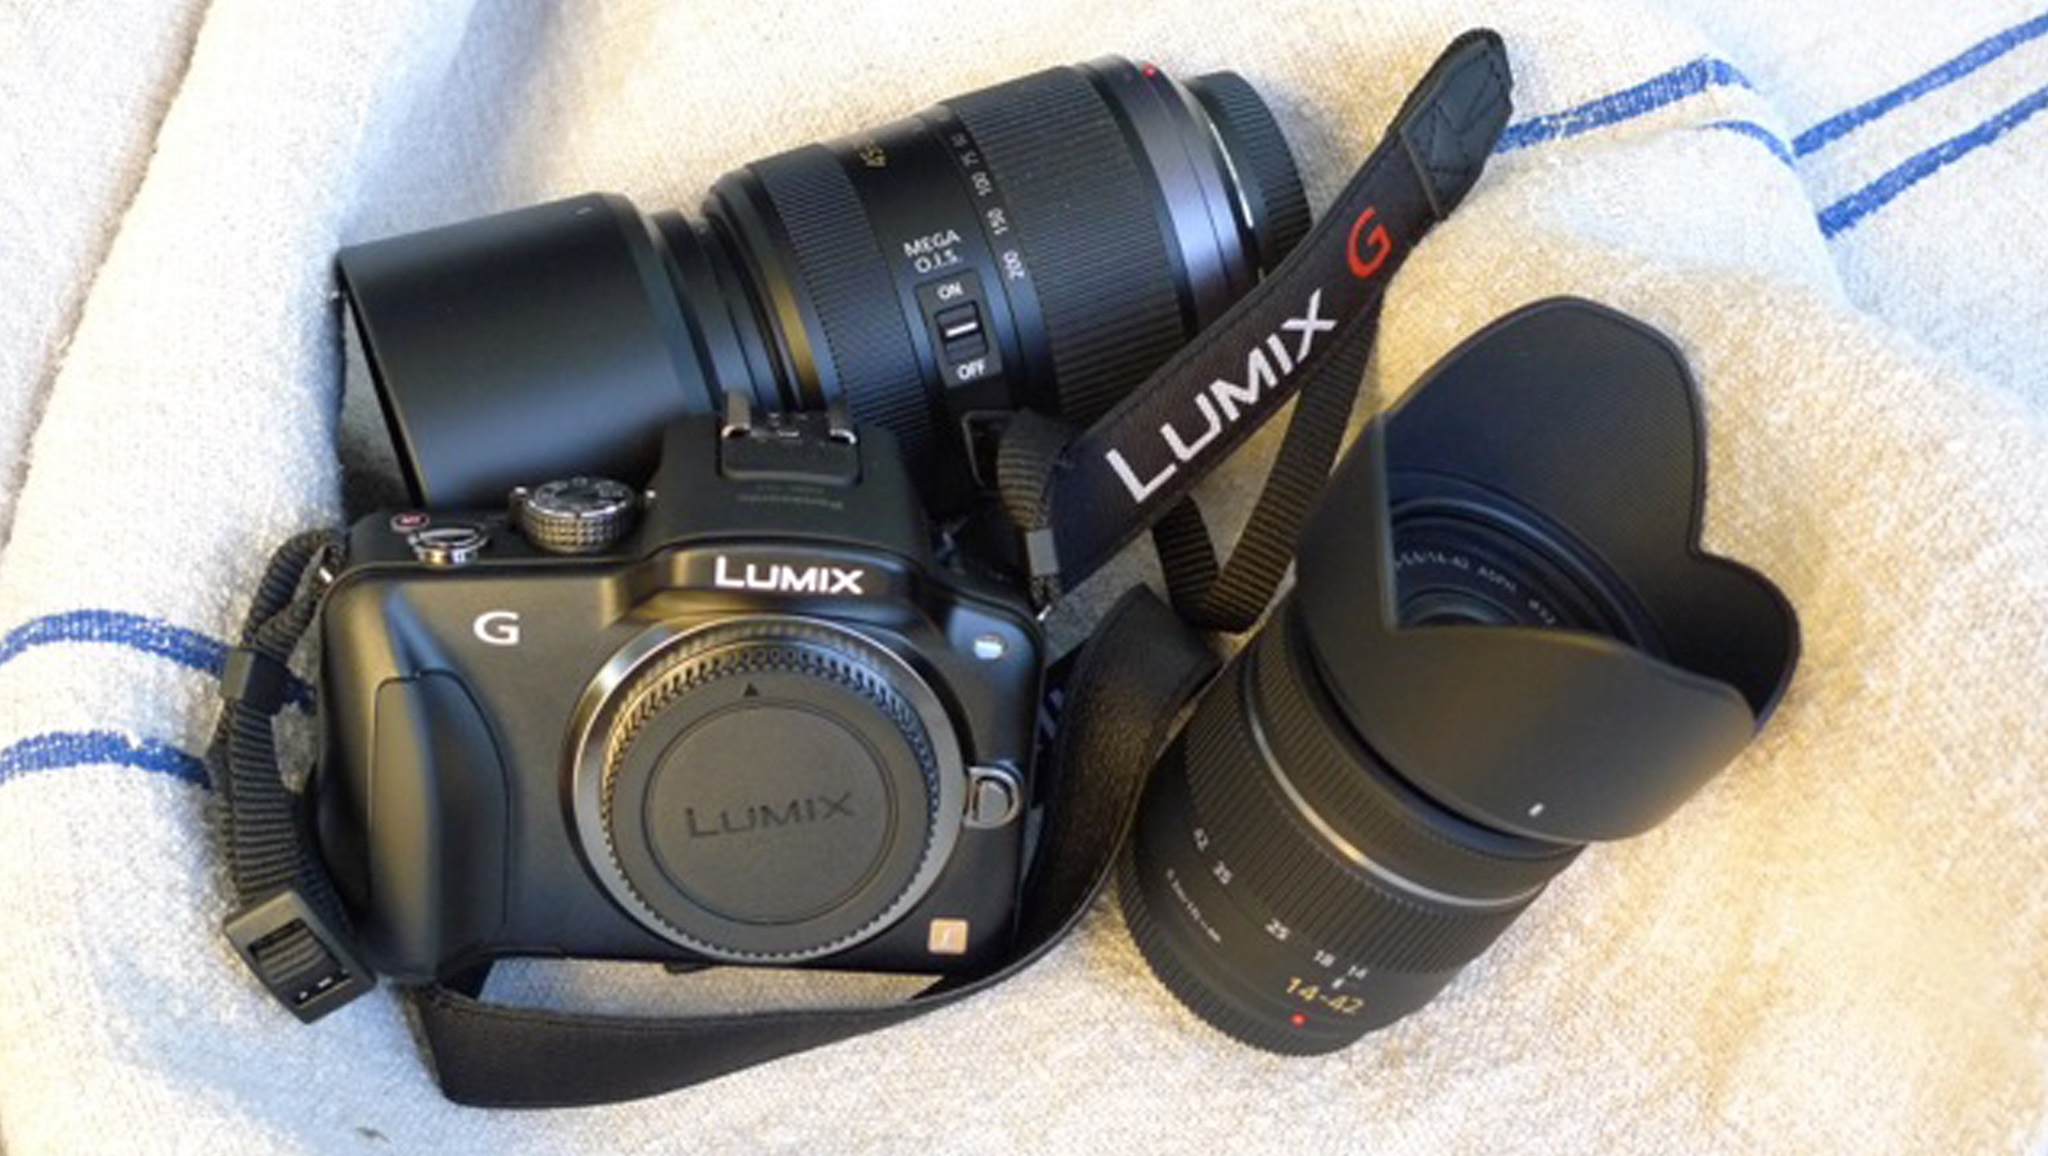 Lumix G3 from Panasonic